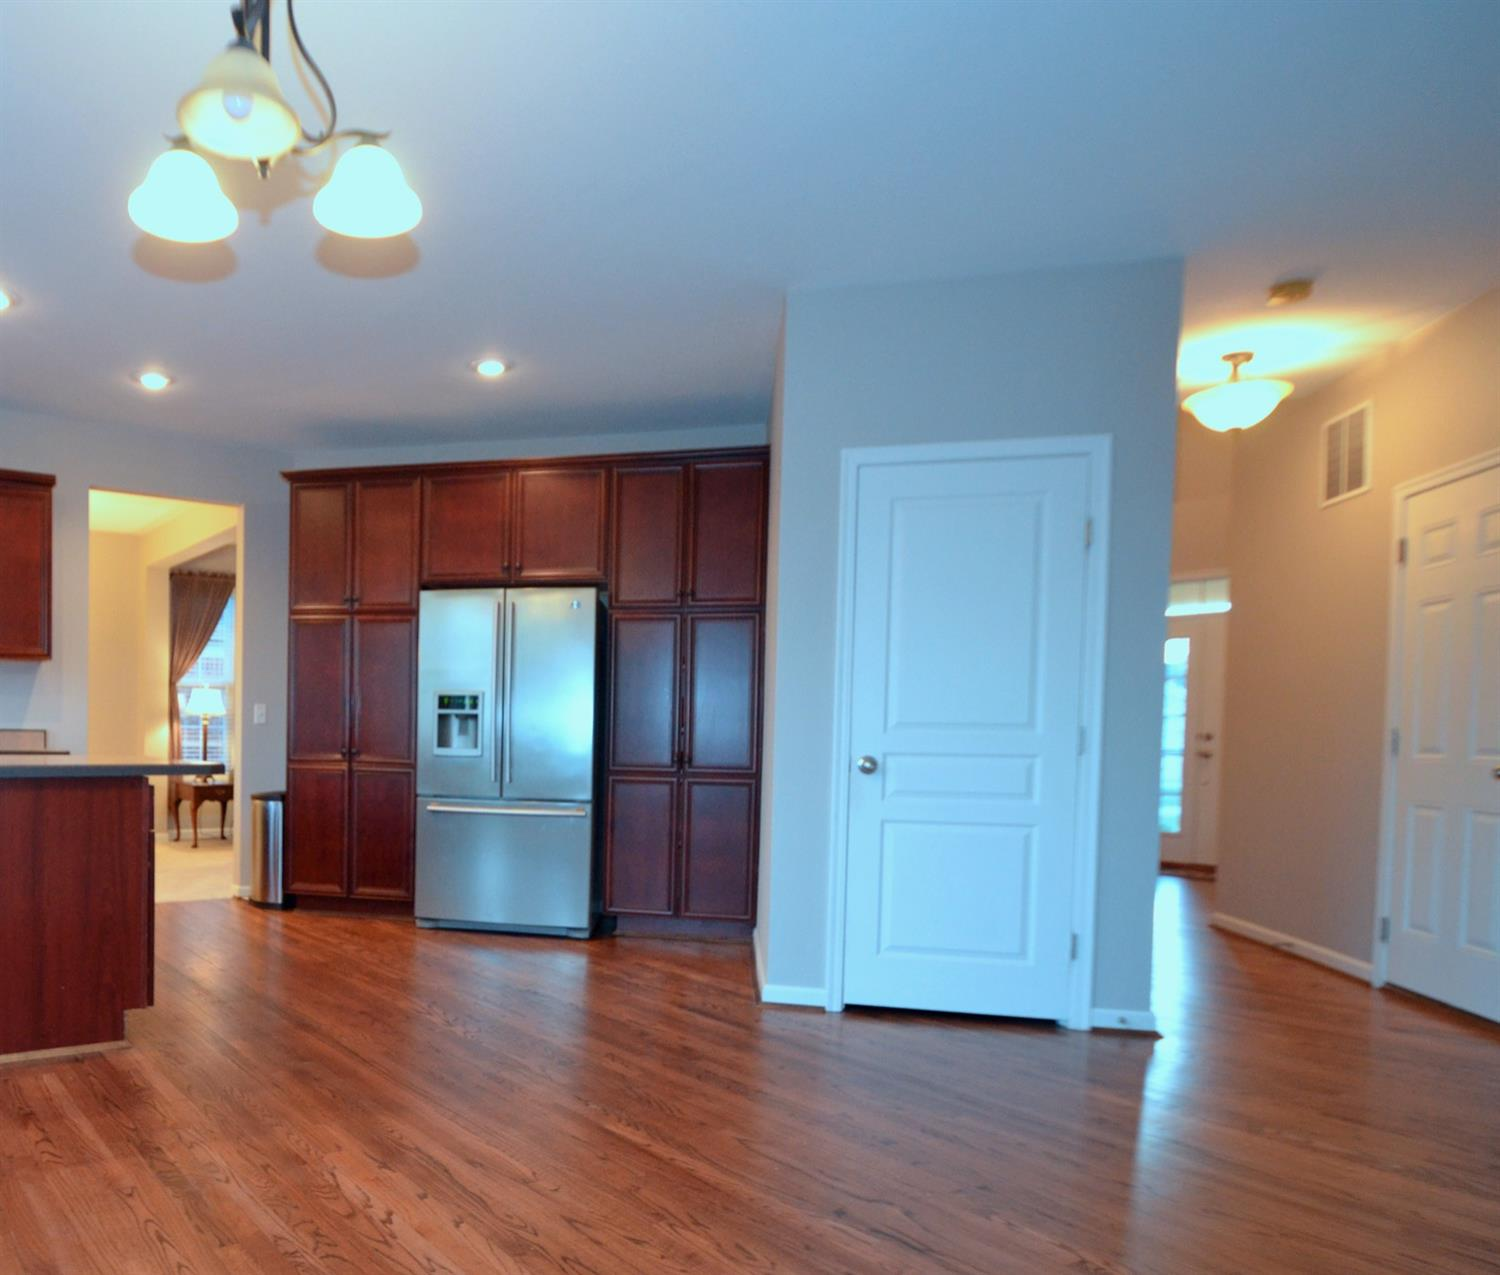 The kitchen is the conveniently located central hub of the home. It flows from the living and dining rooms to a large open family room with ready access to the home's finished lower level, oversized 2-car garage and the front entry.